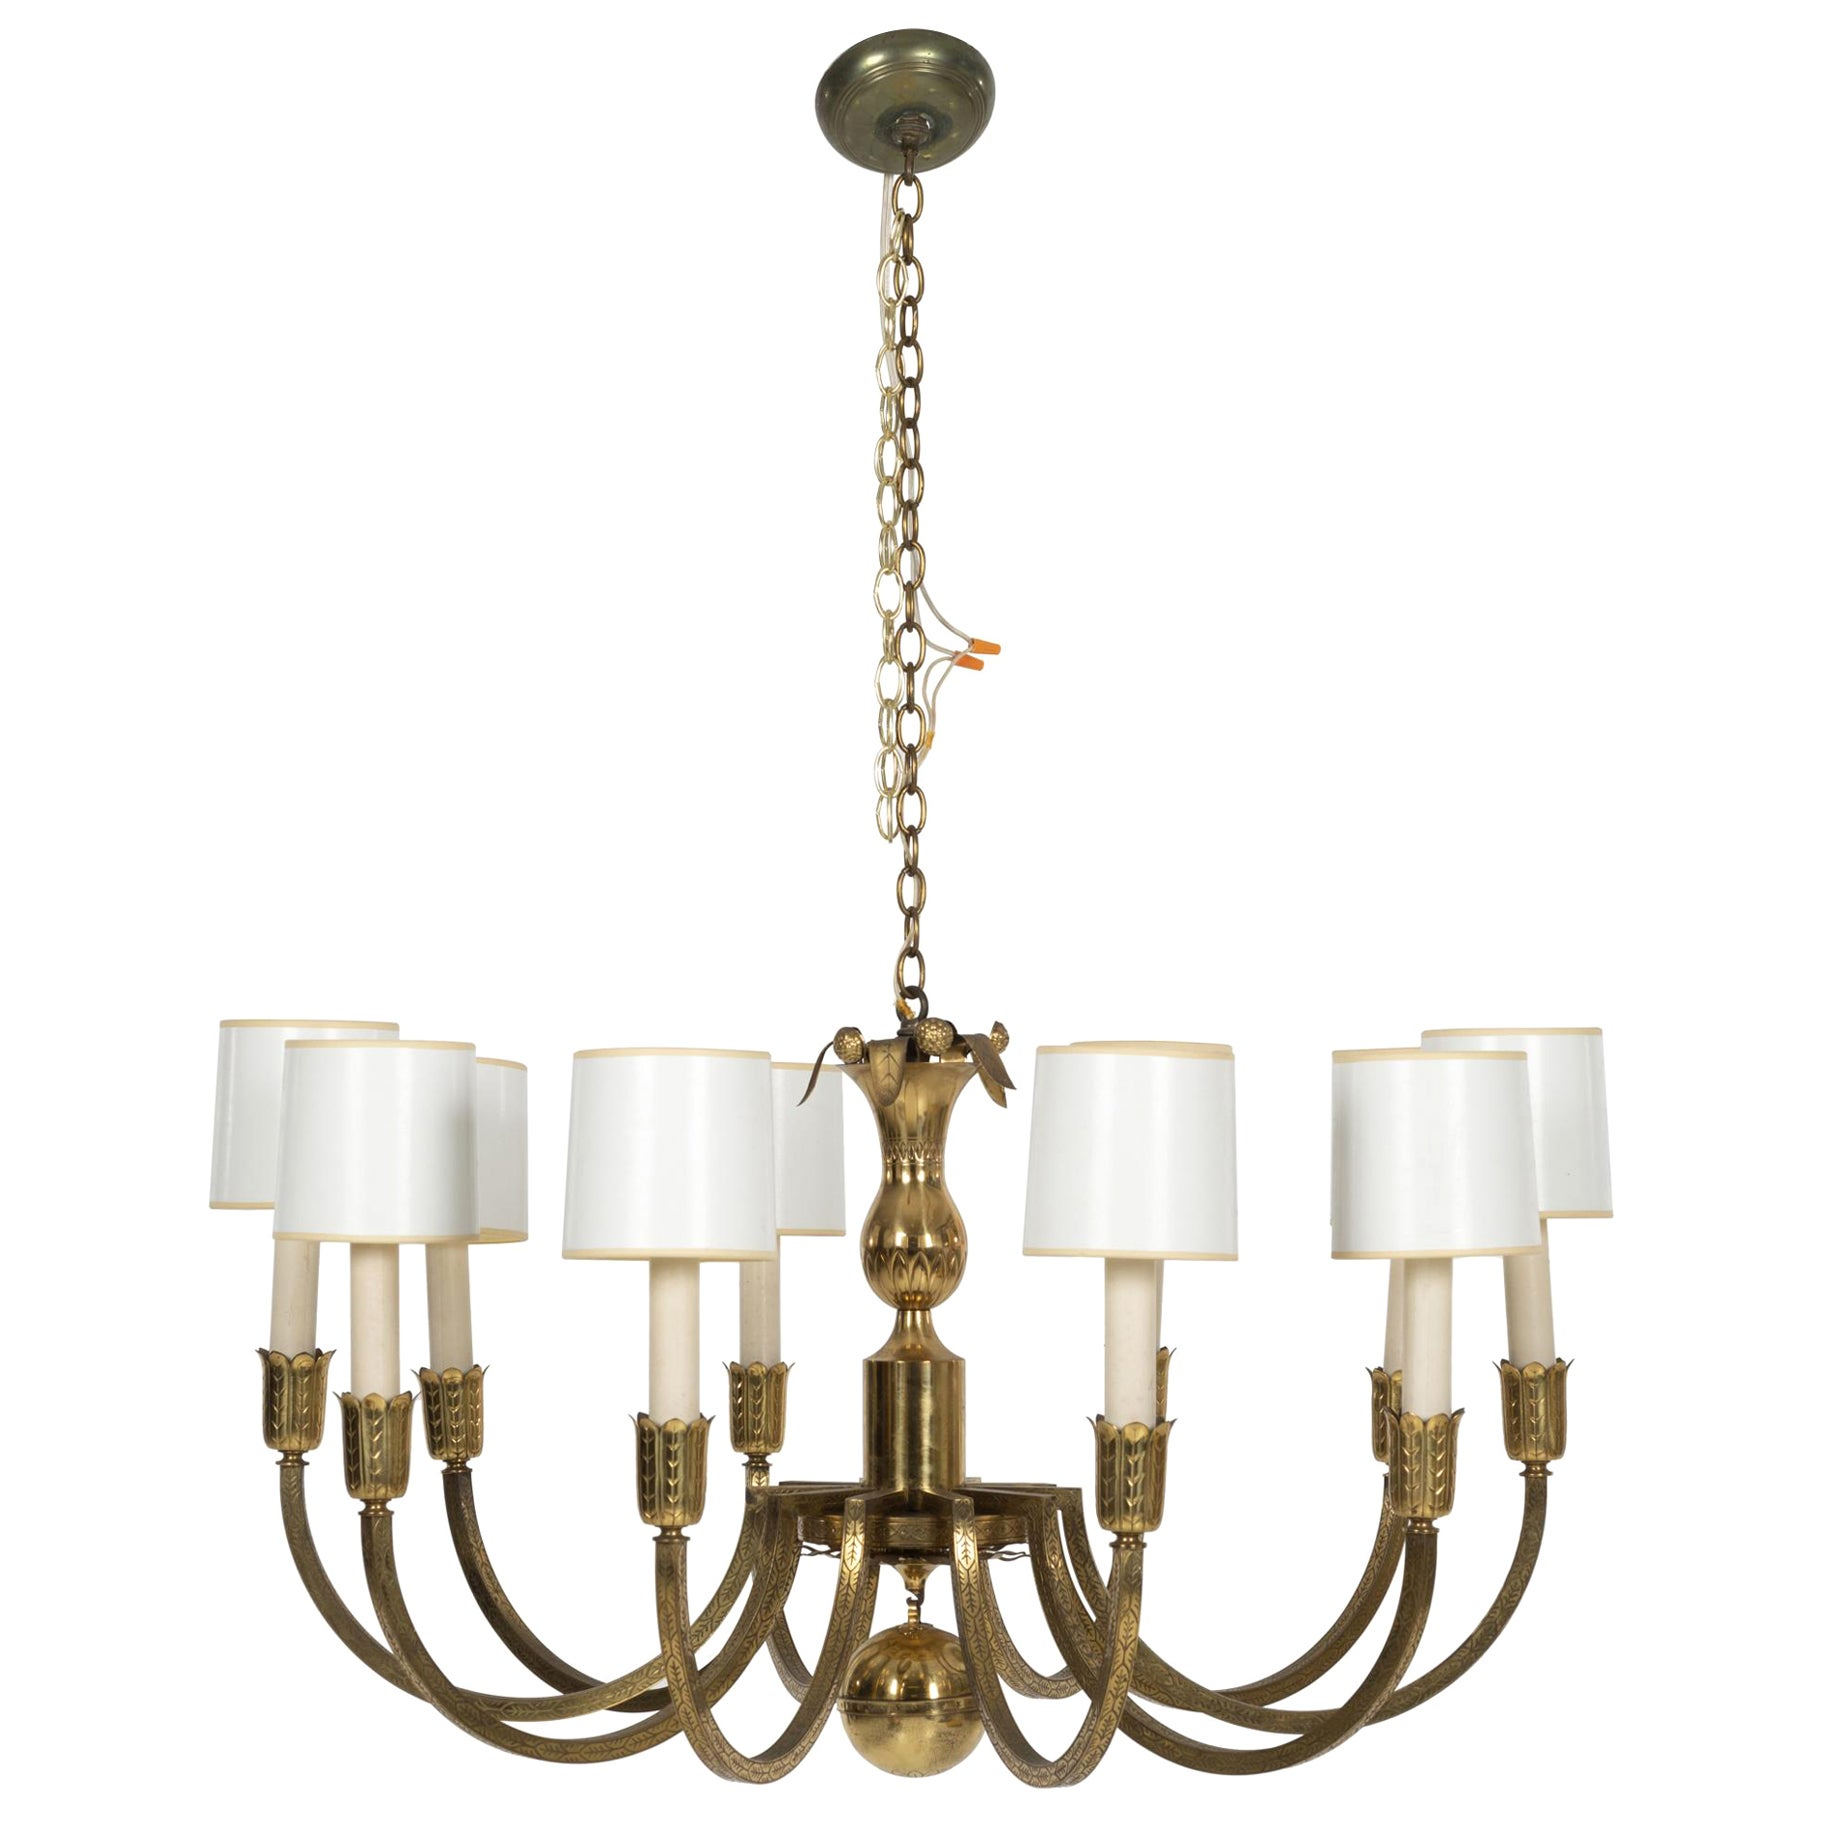 Tommi Parzinger Custom 10-Arm Chandelier Parzinger Originals